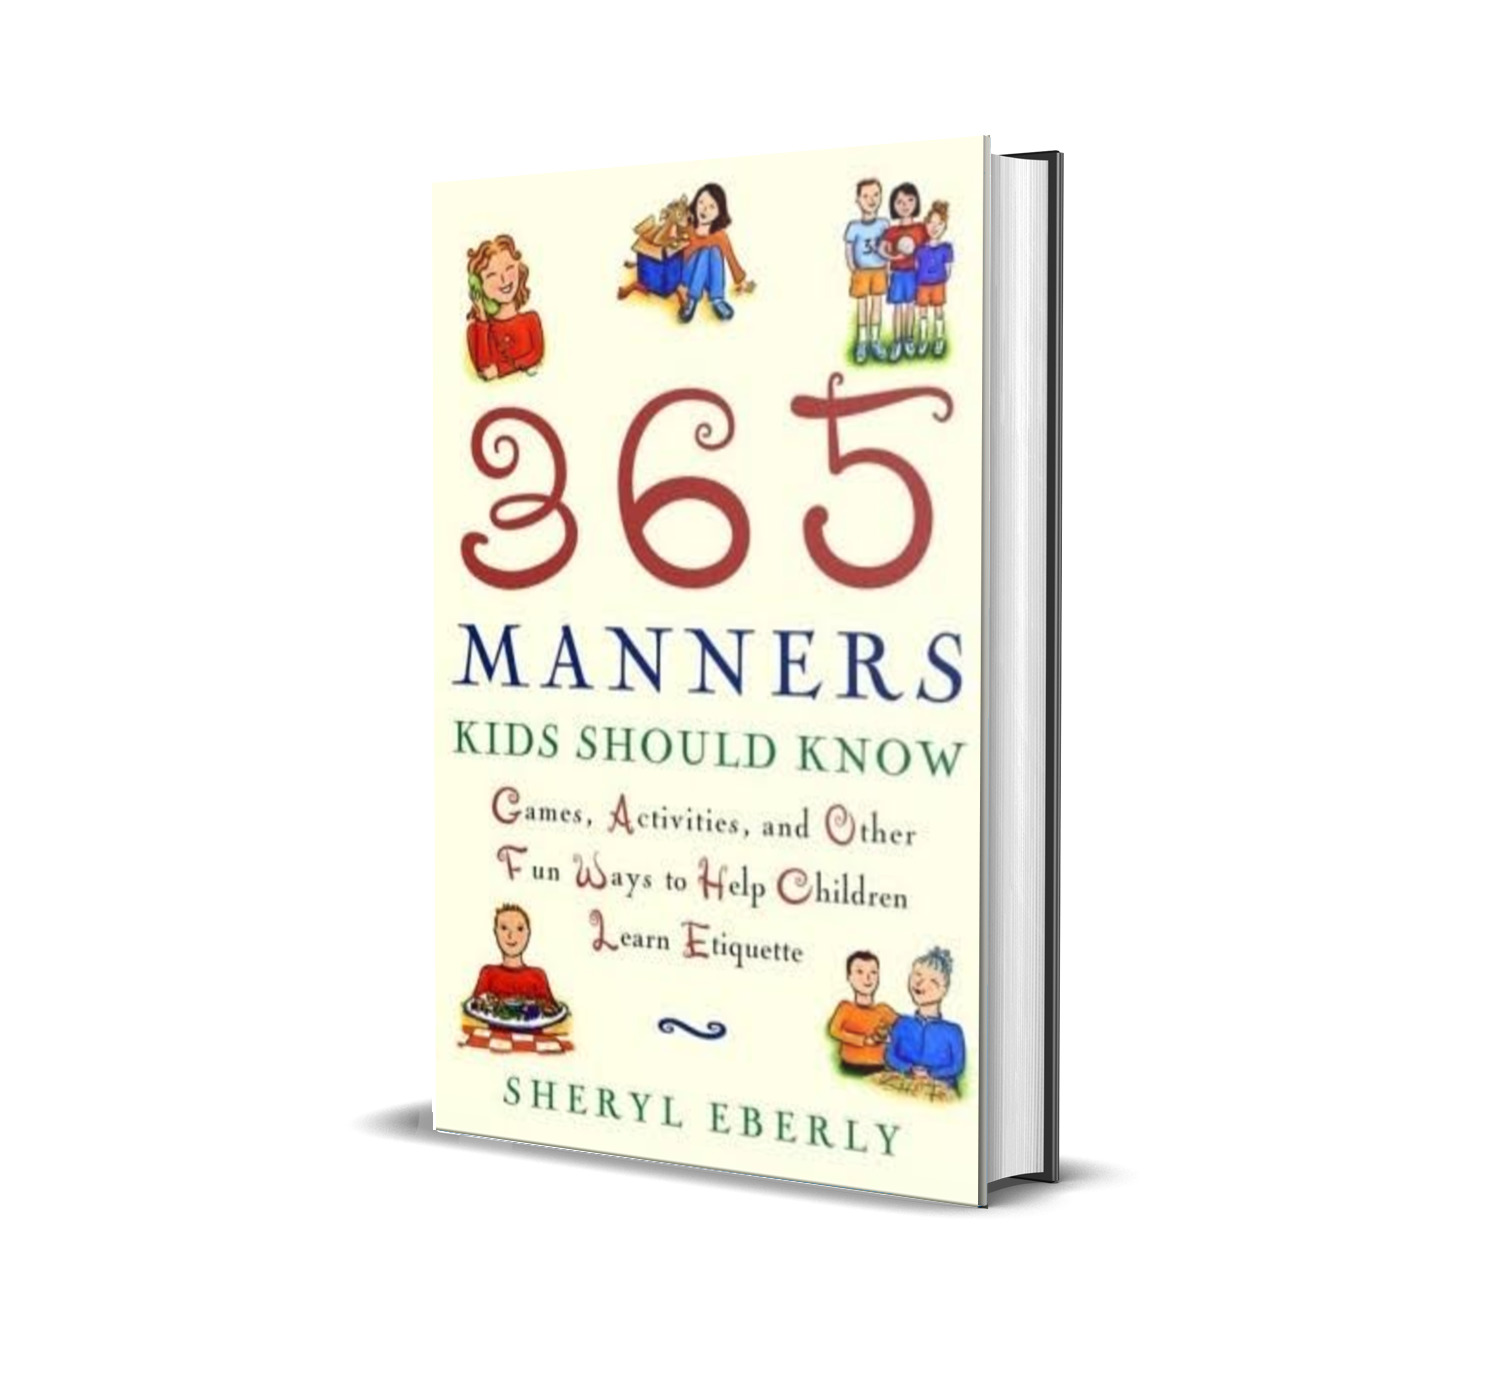 365 manners kids should know- Sheryl Eberly